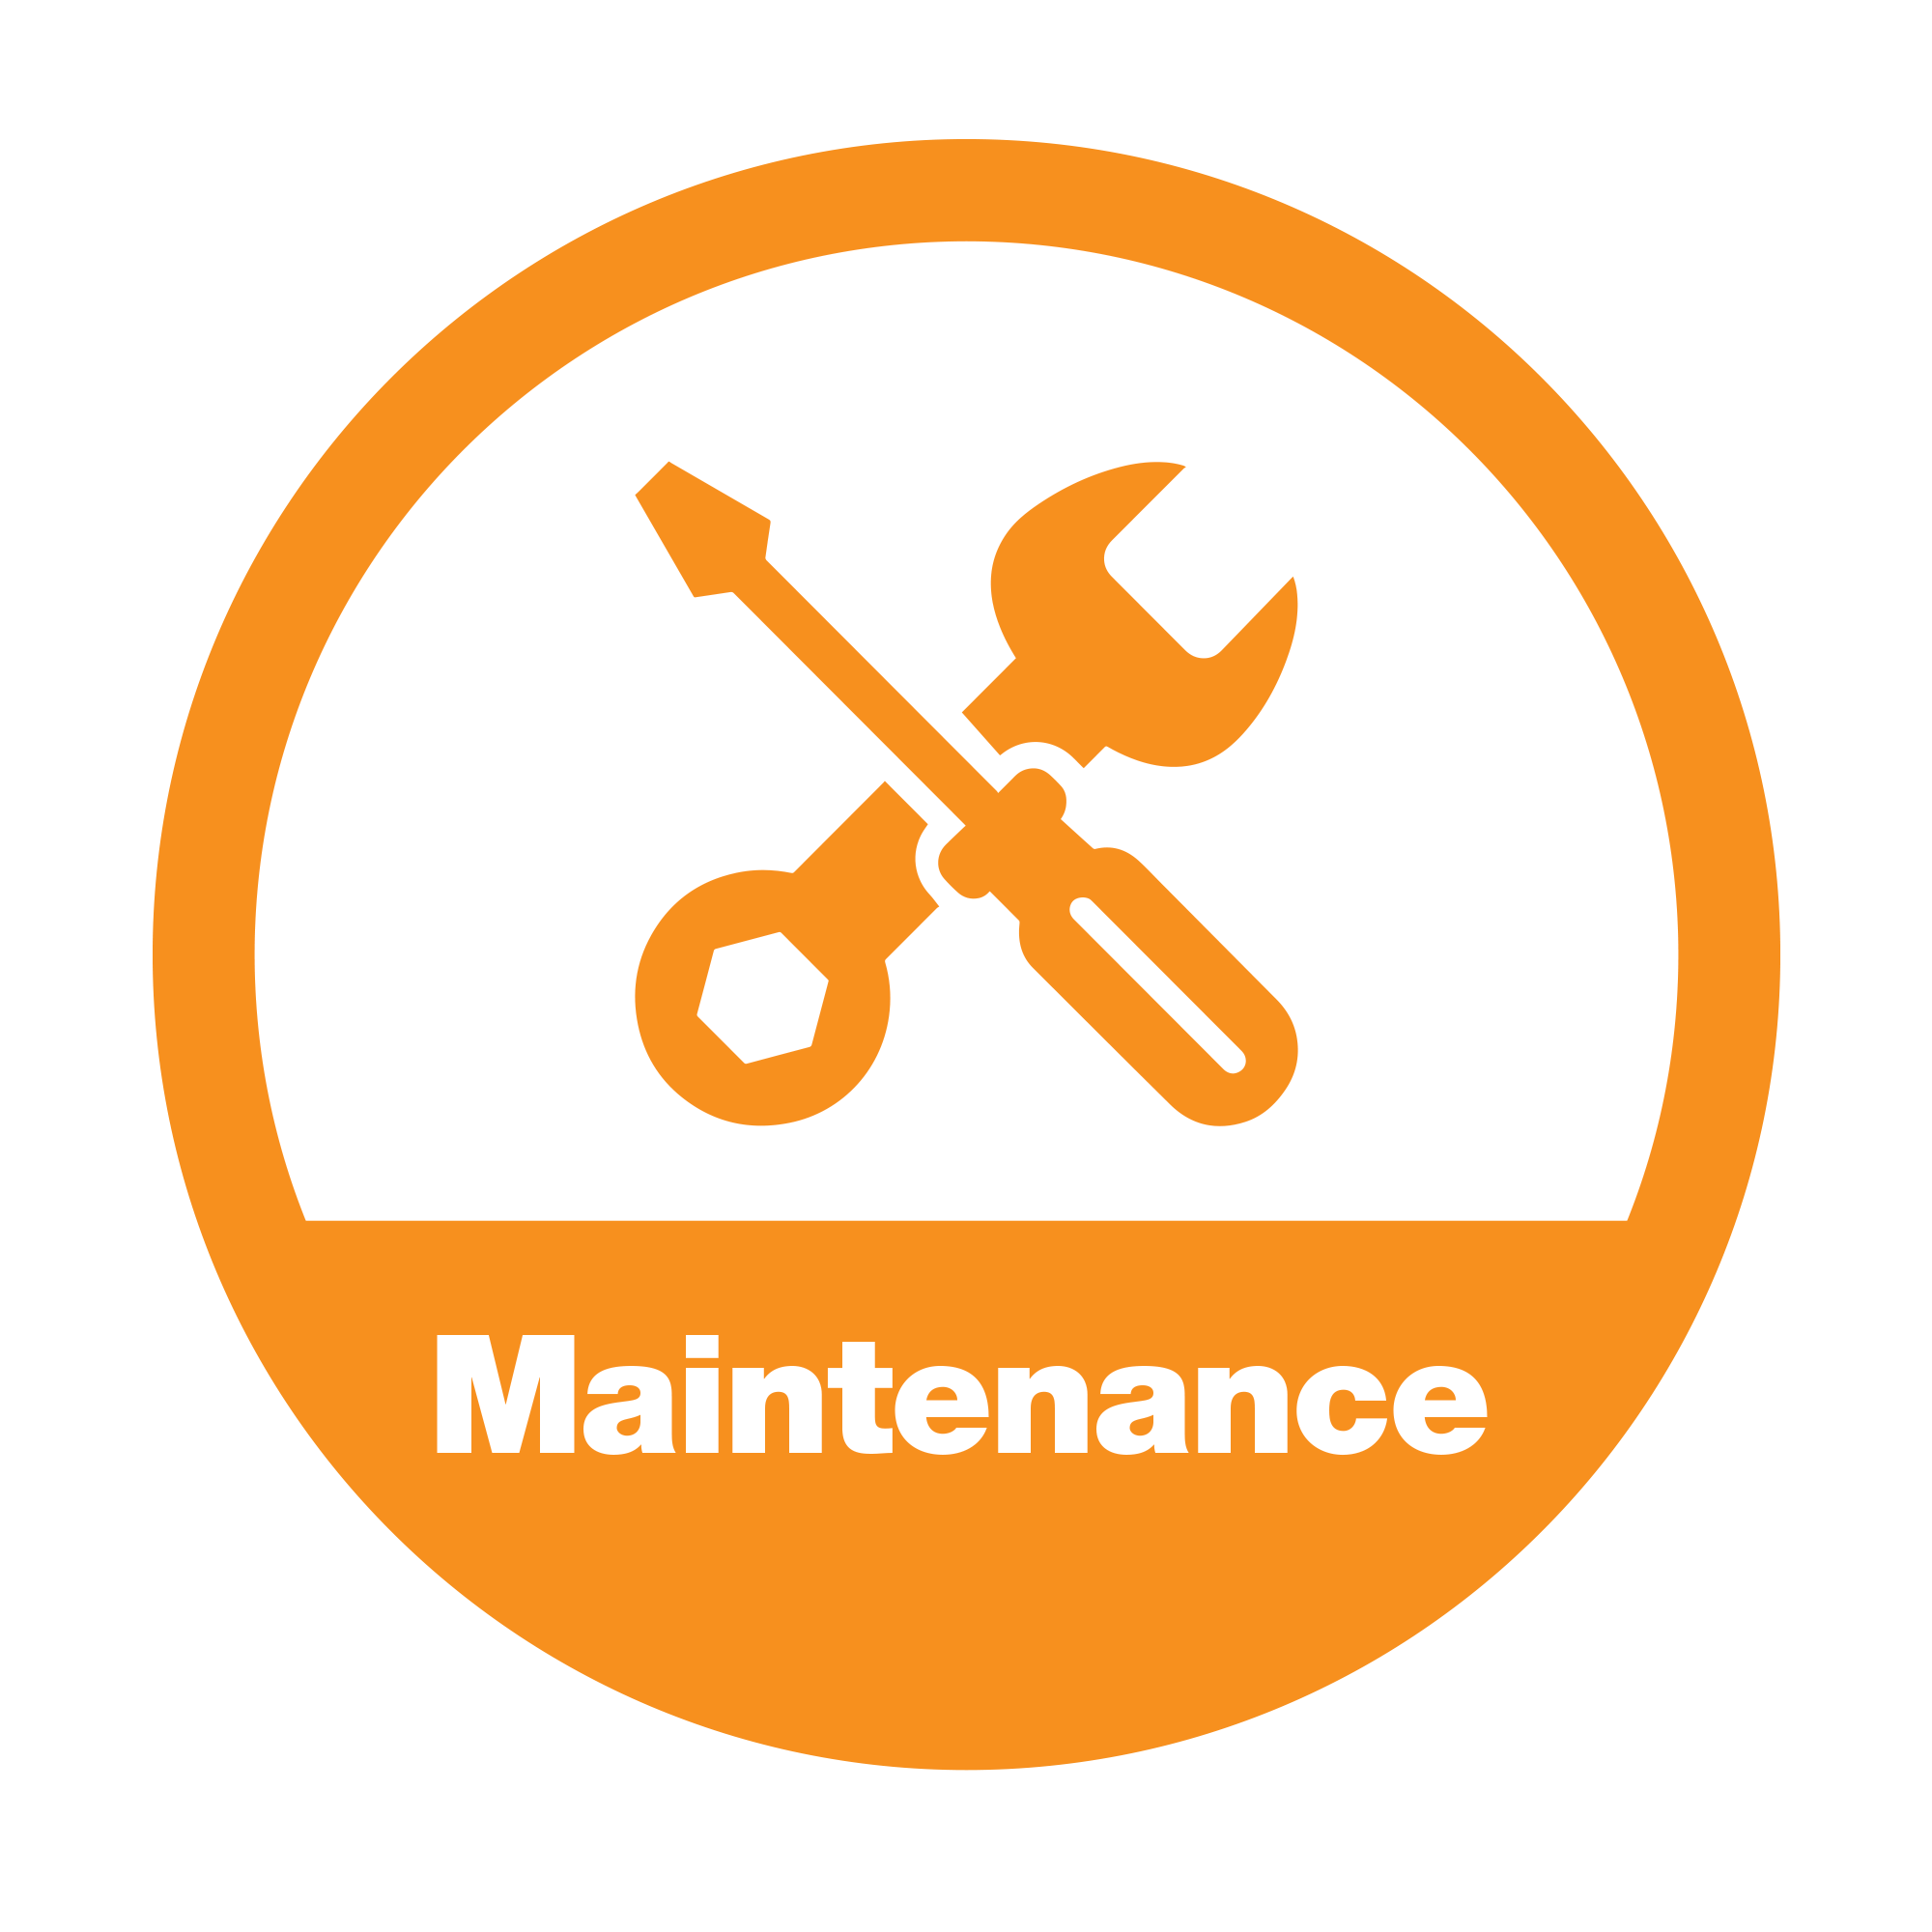 Graphical element image symbolizing maintenance